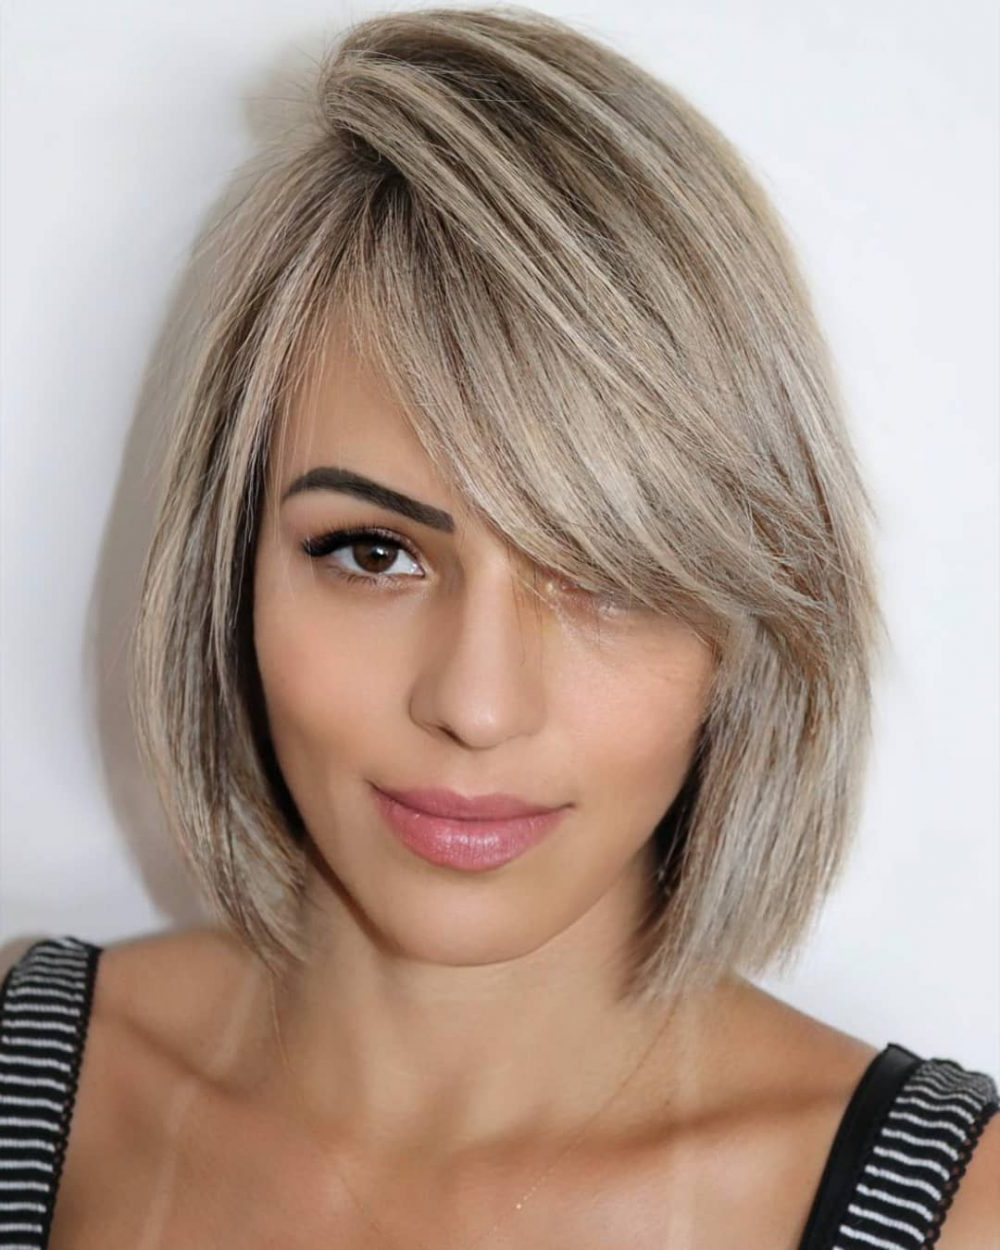 17 Best Side Swept Bangs (2020 Ideas + Pictures) With Regard To Well Known Side Swept Feathered Bangs Hairstyles (View 2 of 20)